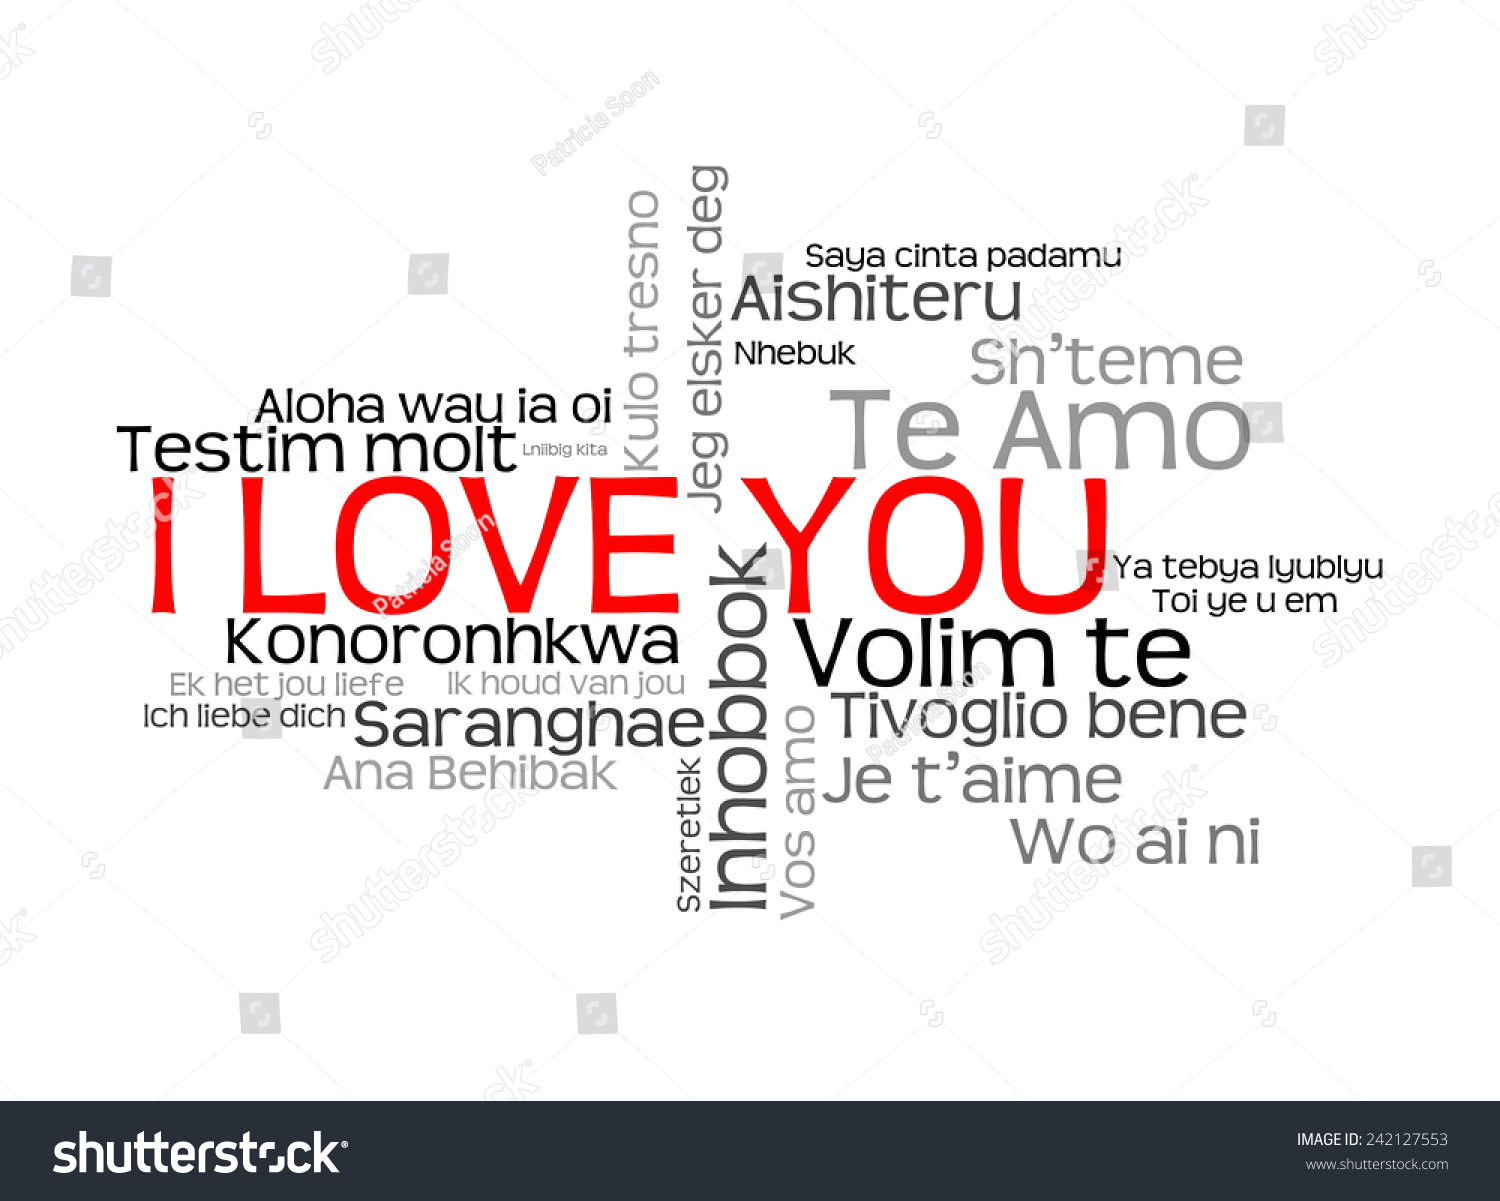 Love words i love you different stock illustration 242127553 love words i love you in different languages of the world words cloud thecheapjerseys